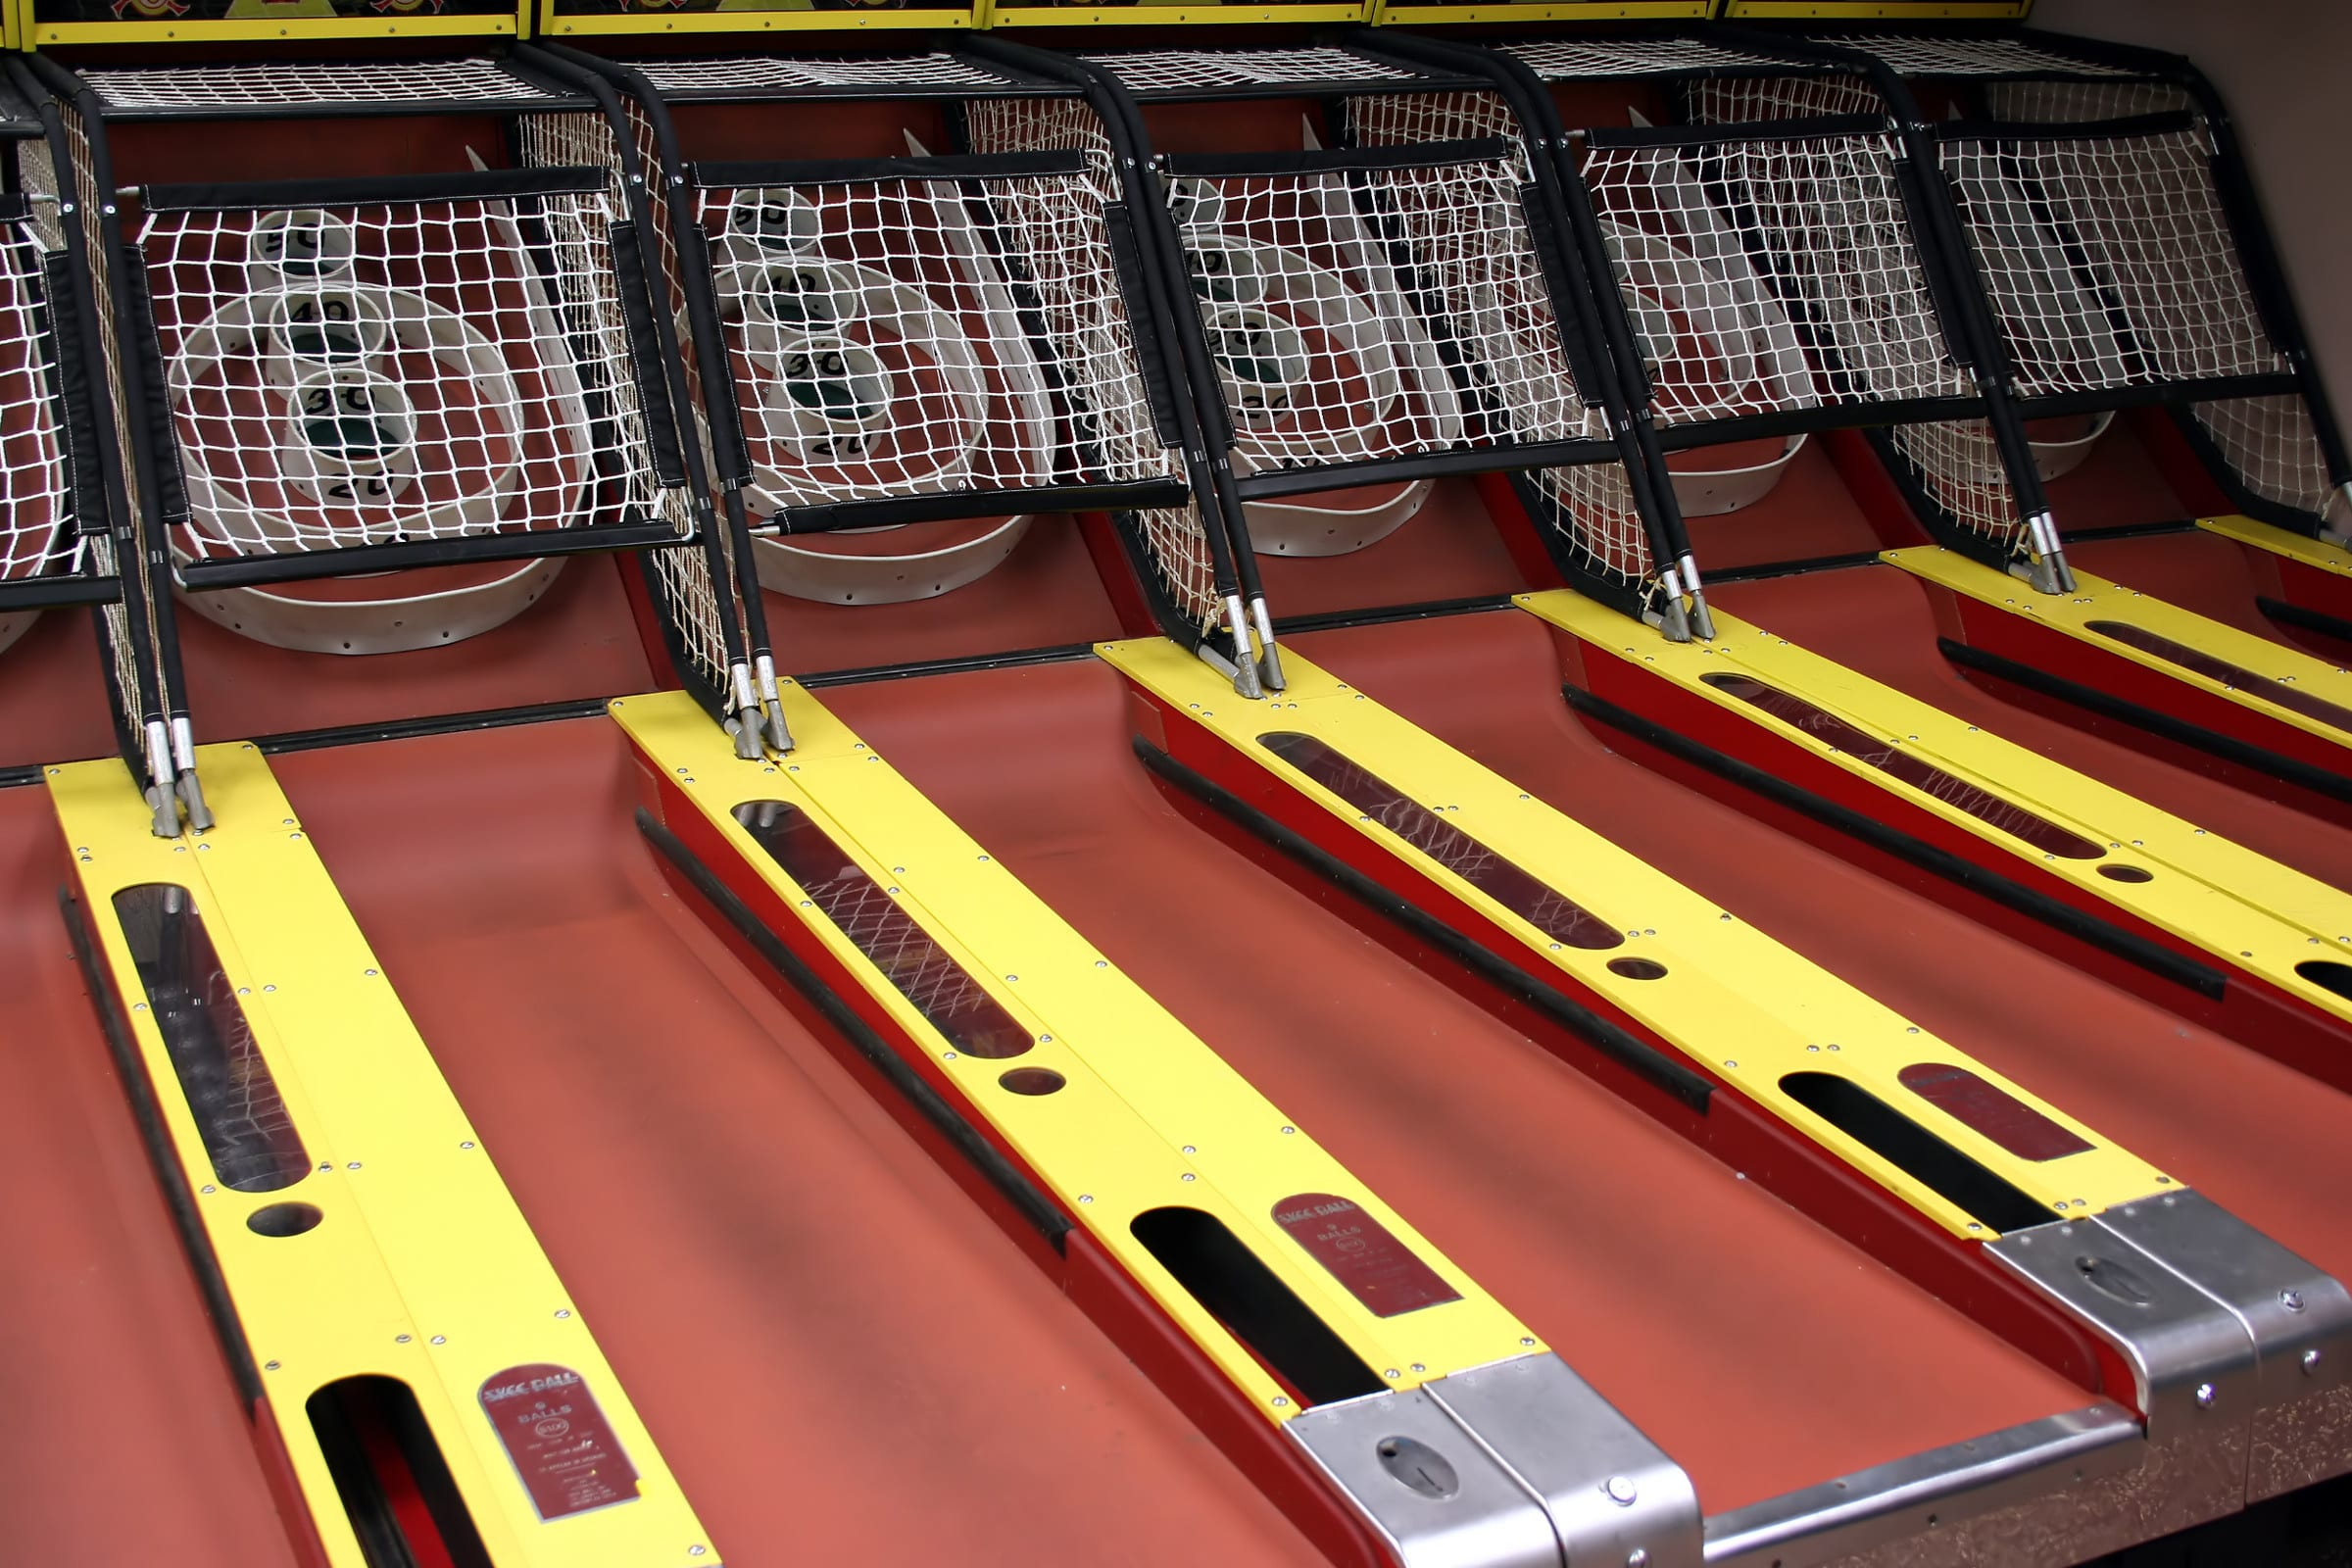 Home Activity: Laundry Basket Skee-Ball